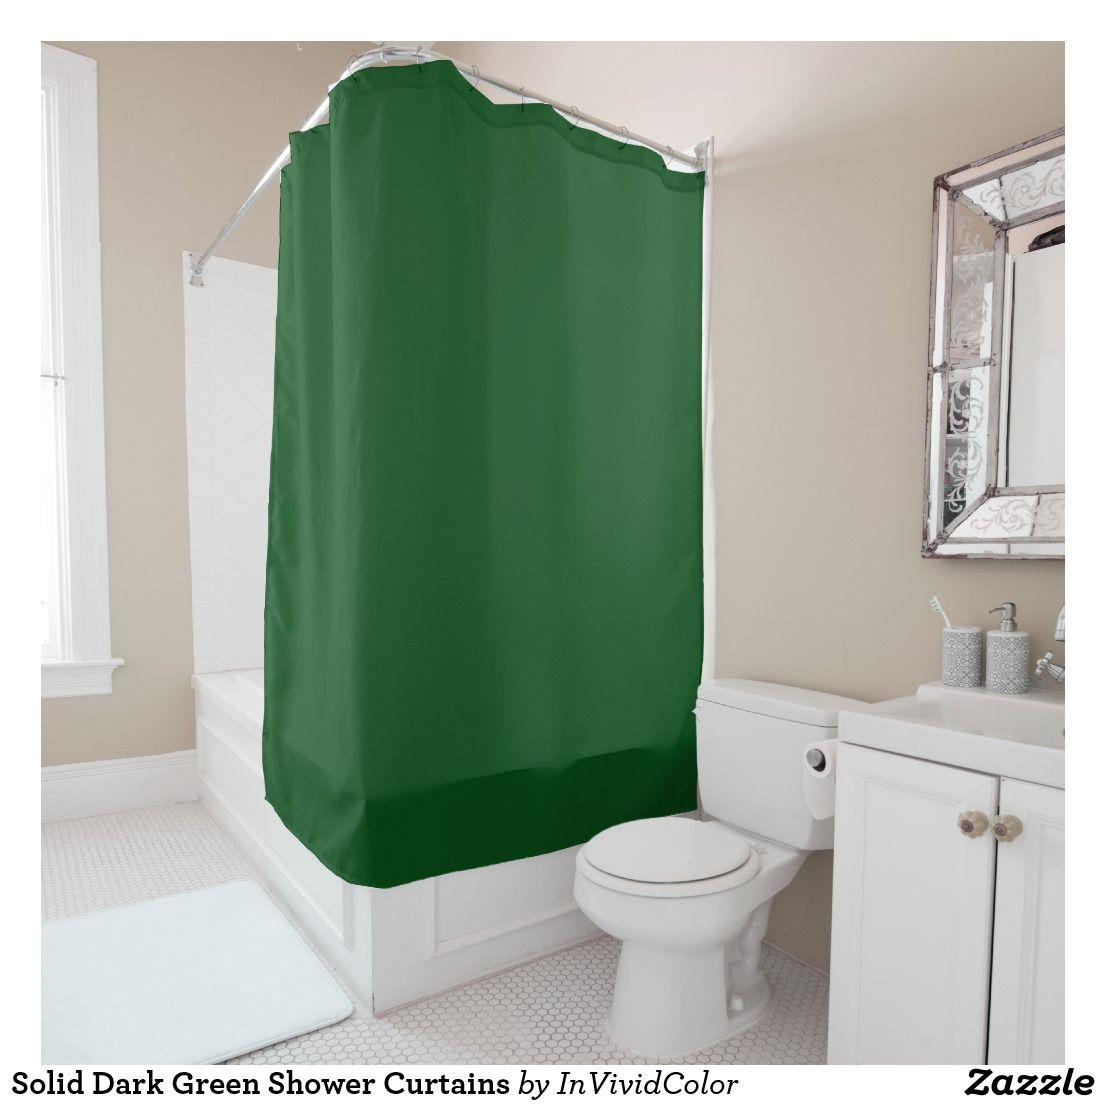 Solid Dark Green Shower Curtains Zazzle Com Green Shower